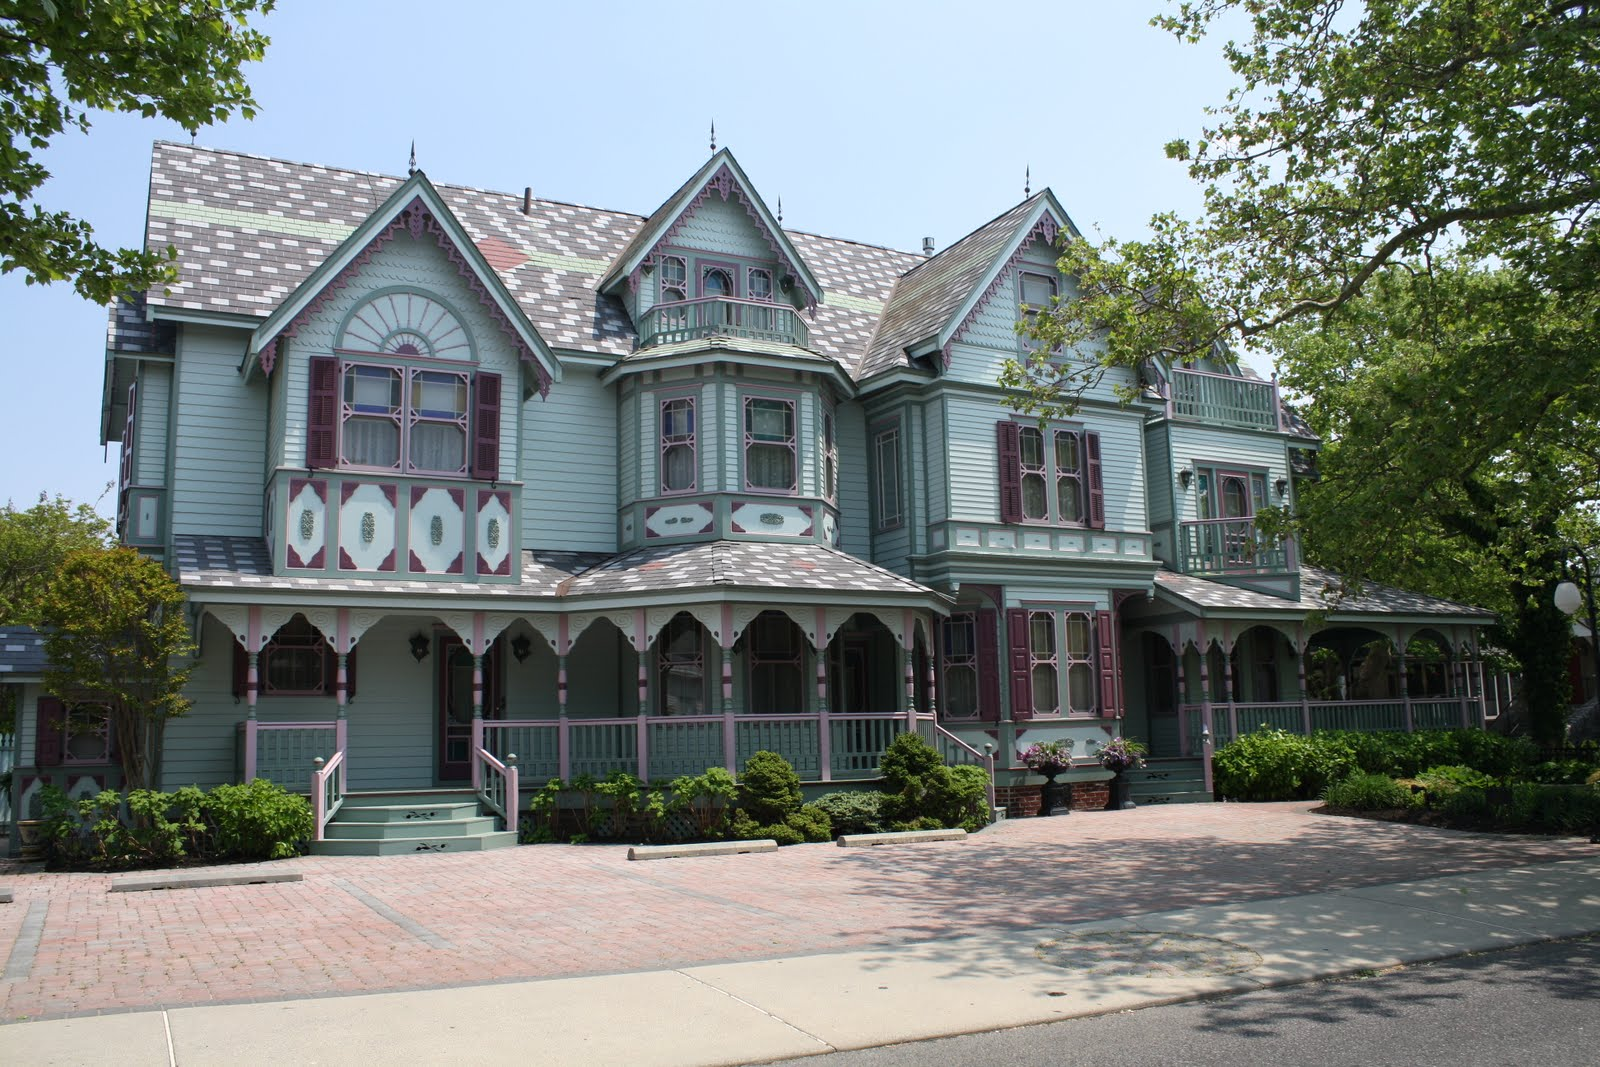 Cool change cape may nj victorian homes - What is a victorian house ...